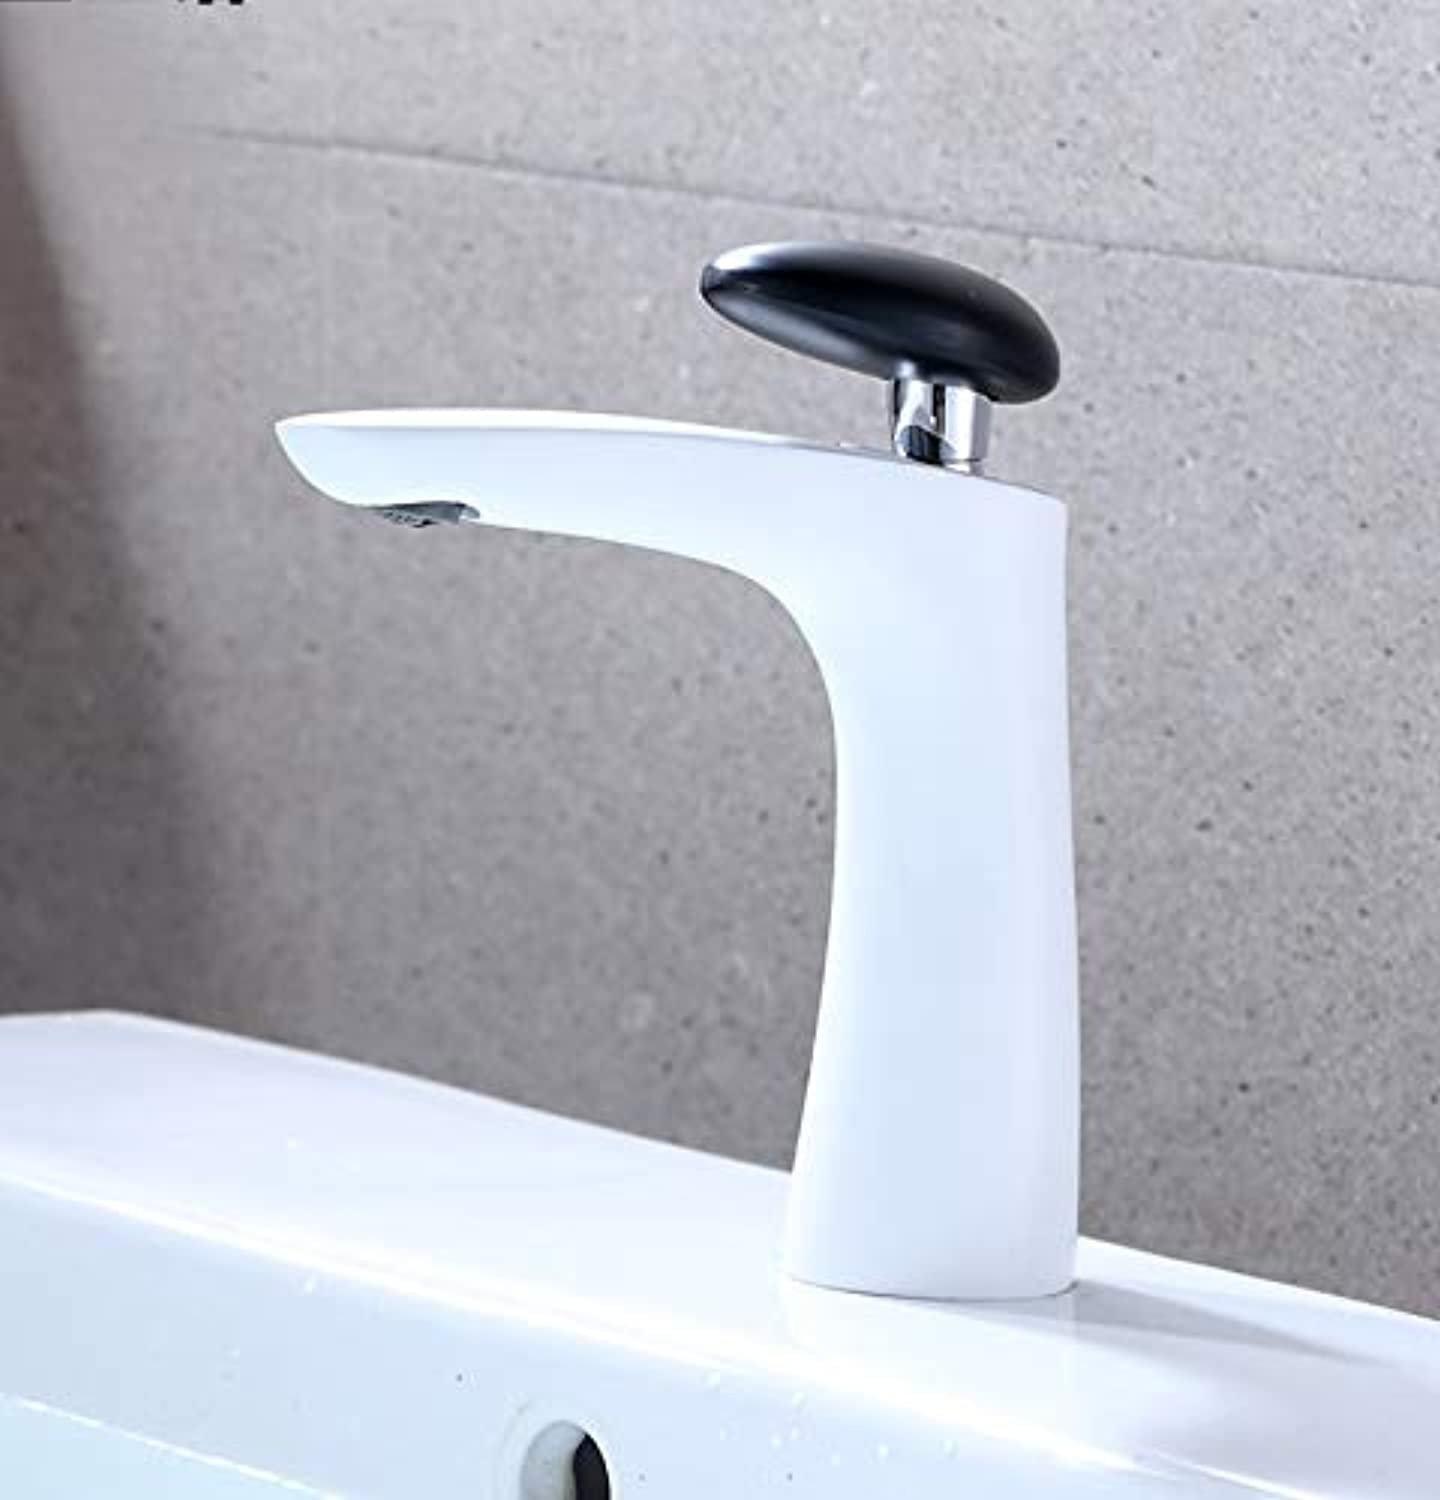 ROKTONG Faucet Copper Faucet Hot And Cold Household Single Hole Bathroom Bathroom Wash Basin Basin Basin Wash Basin Faucet